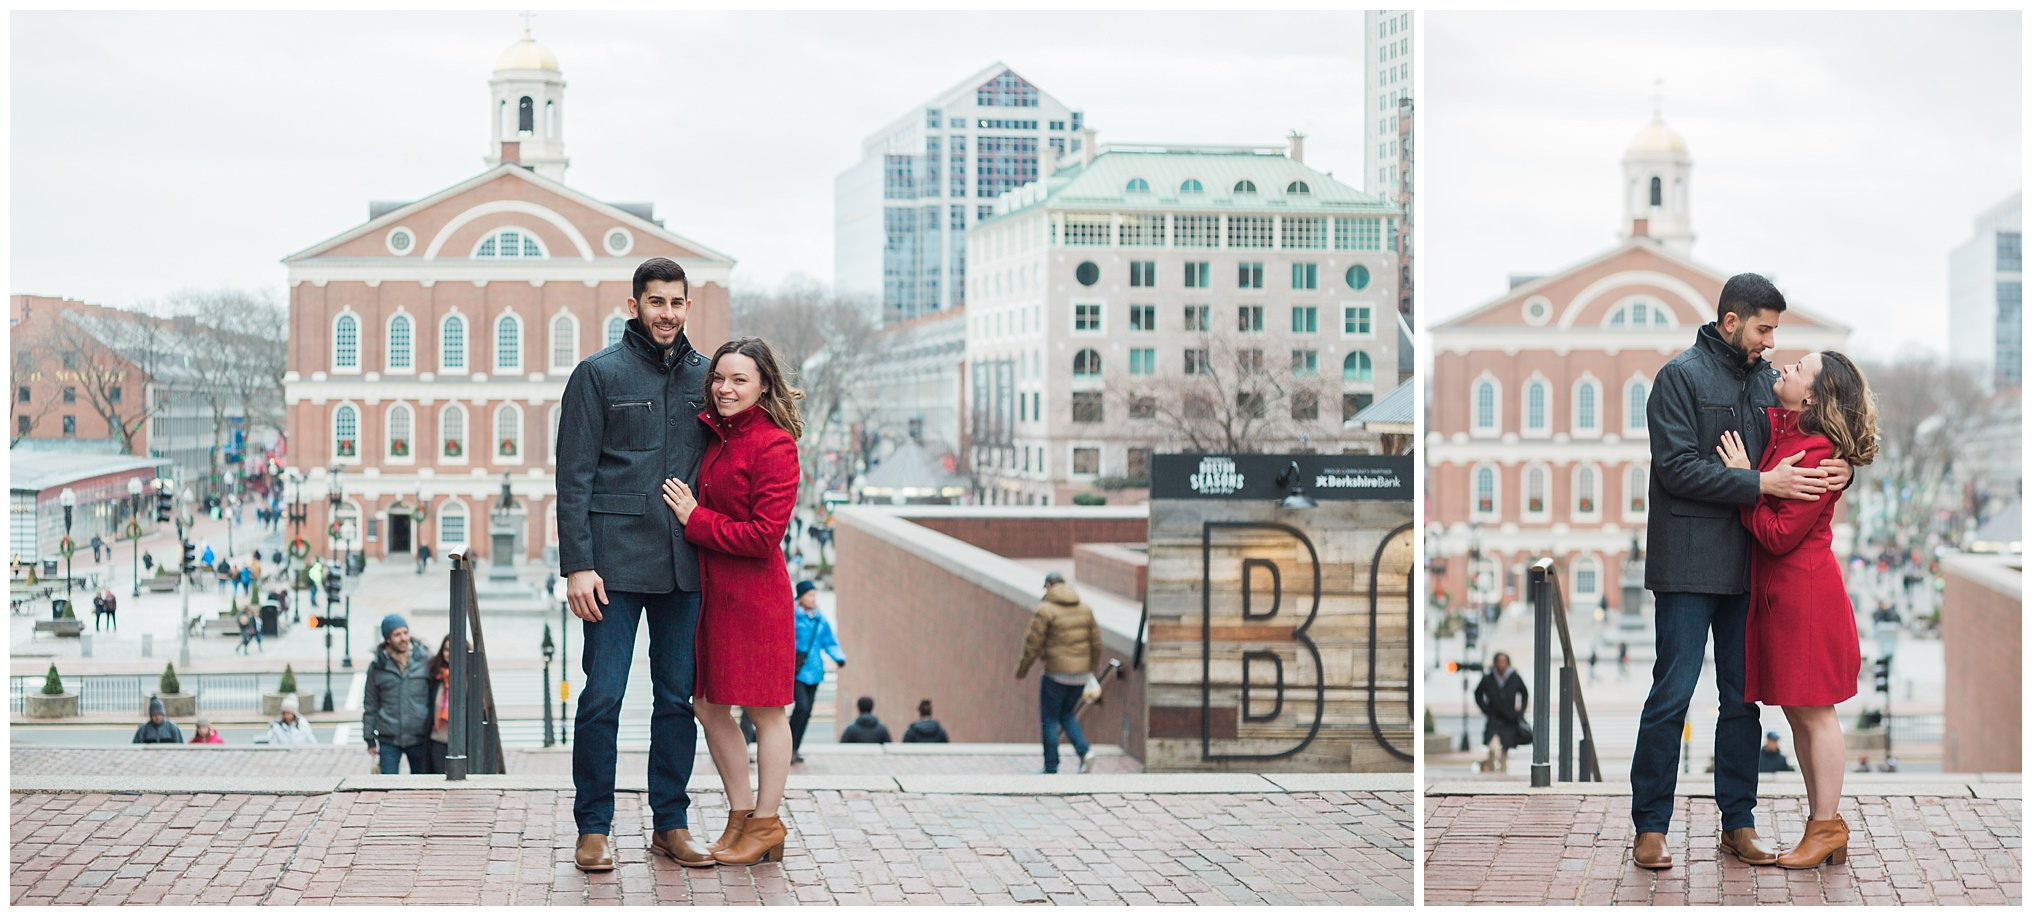 Click over to see more from this Boston cityscape engagement session.